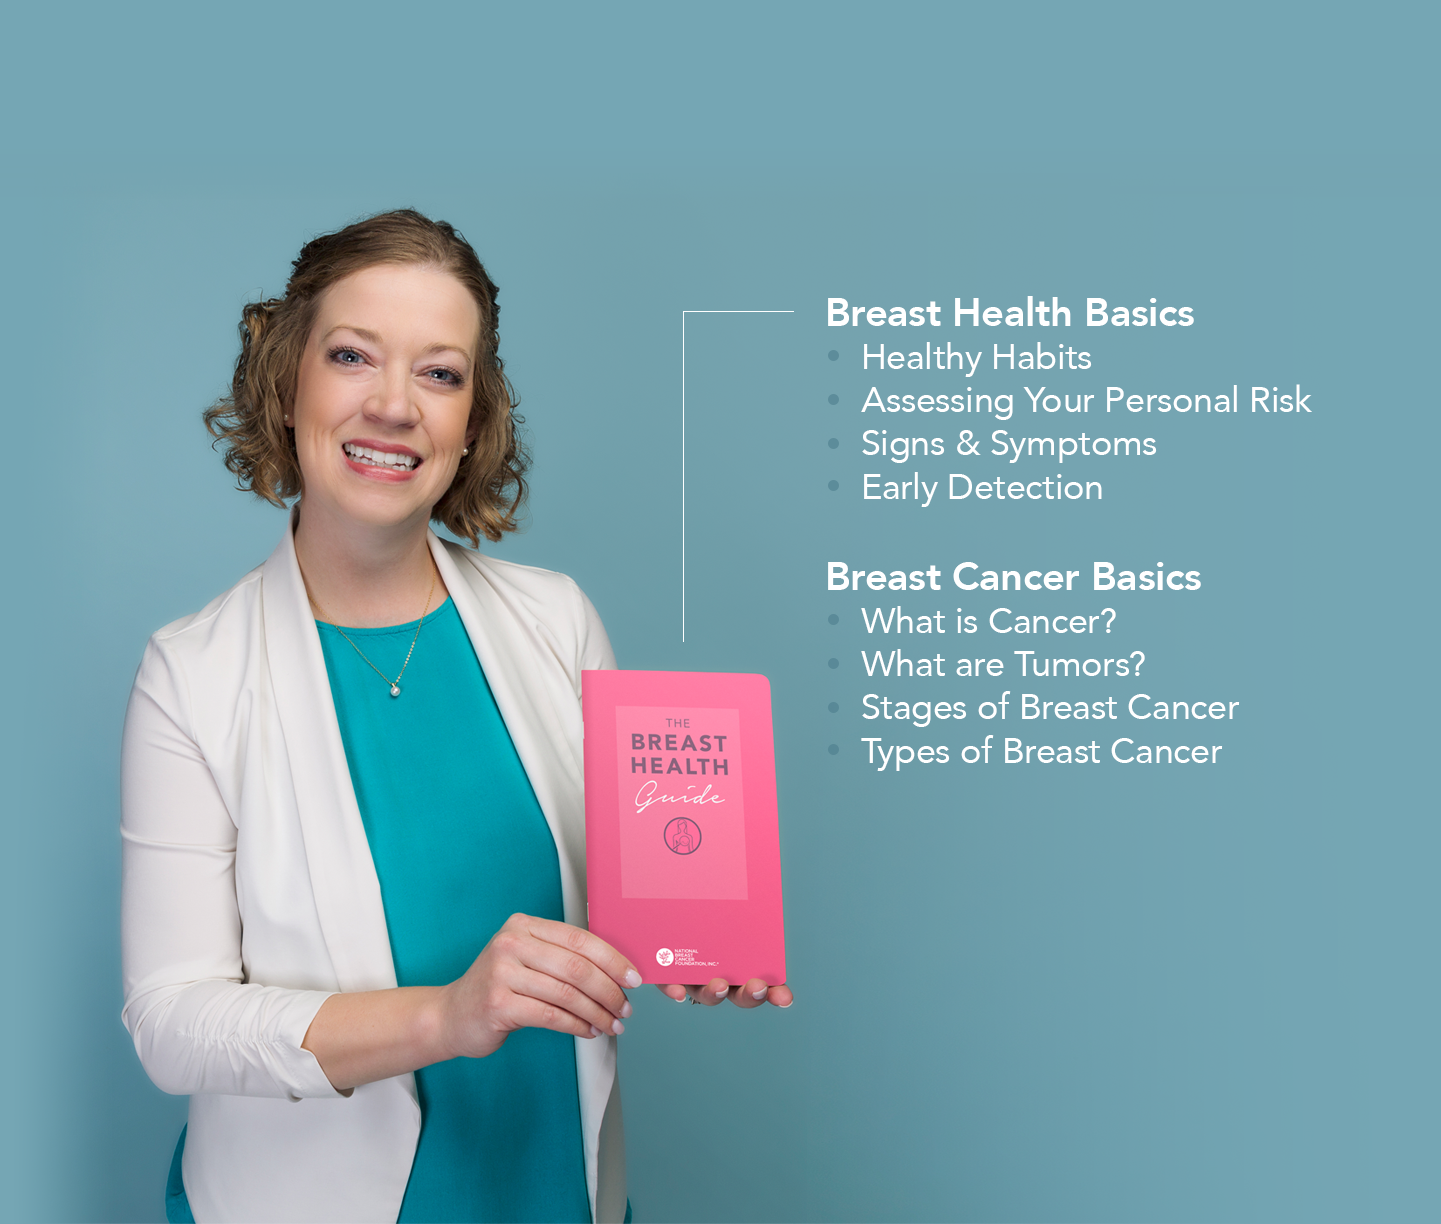 Get a free Breast Health Guide, which explains the basics of breast cancer and healthy habits that can reduce your risk.